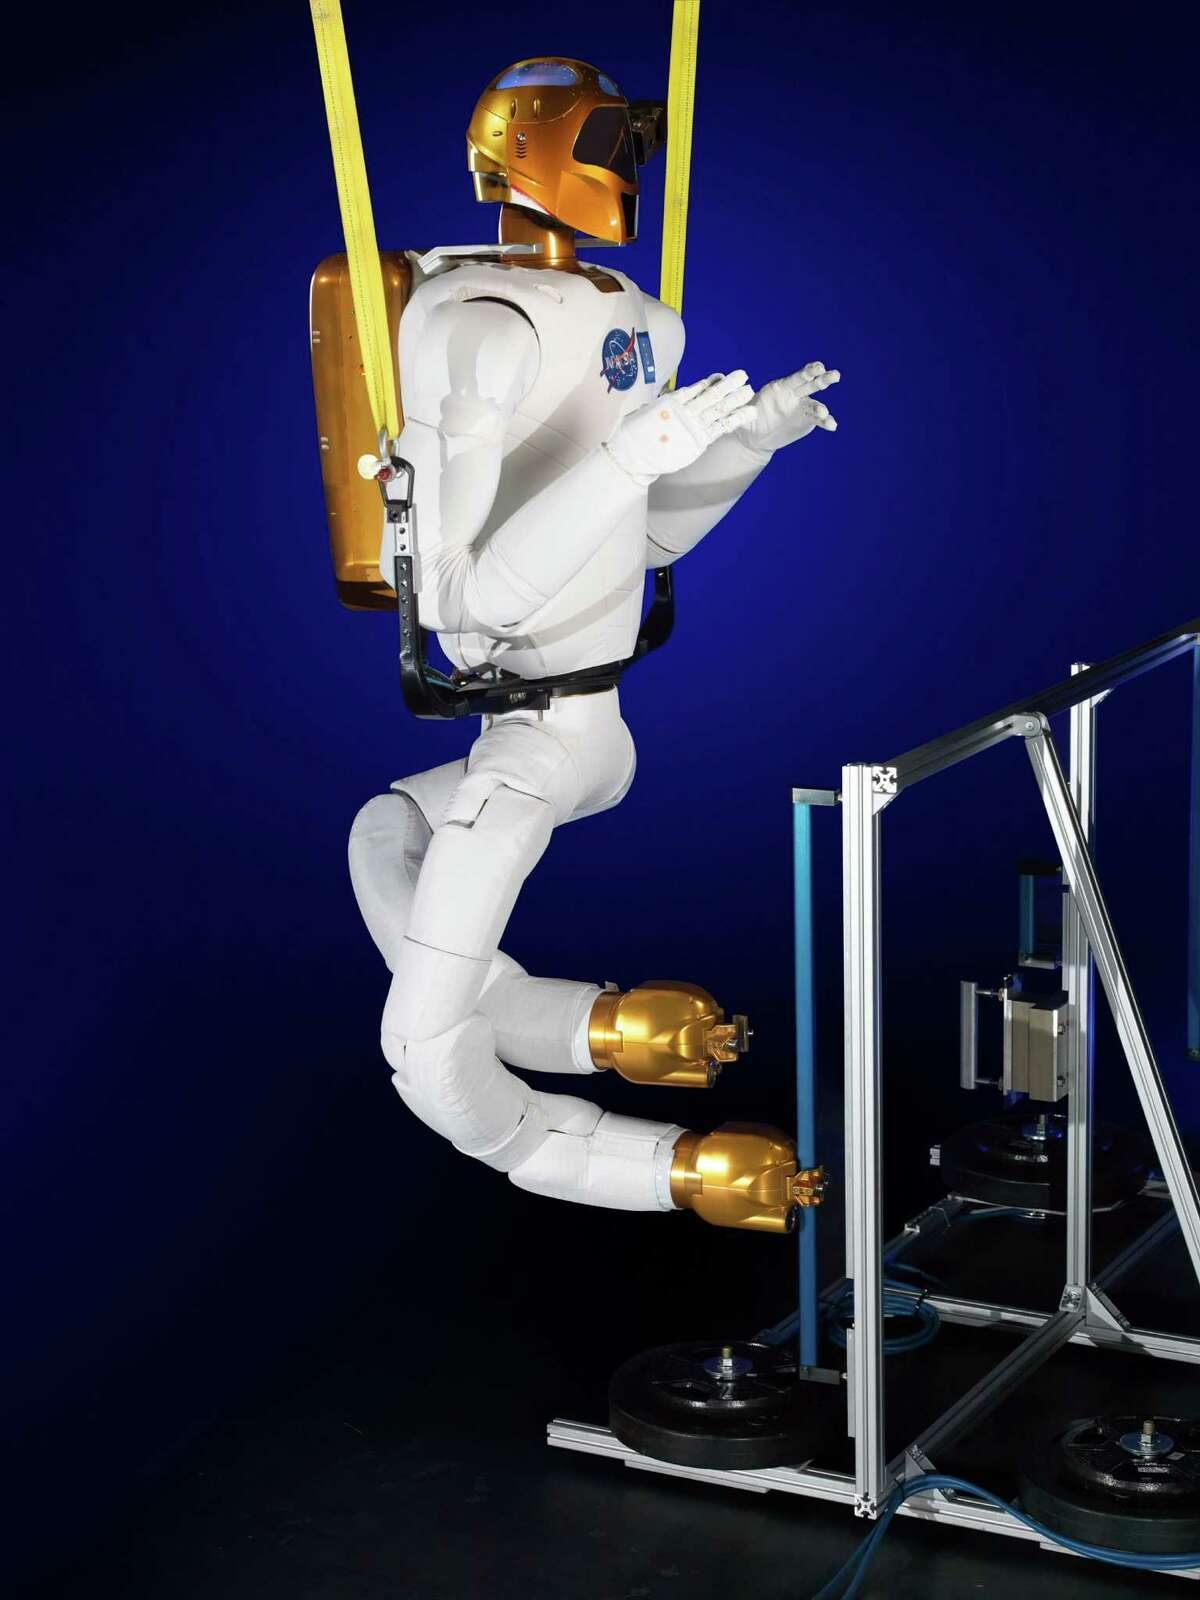 Robonaut - with legs - hung out at Houston's Johnson Space Center before being launched in 2011. On Sunday, it finally gets its space legs, courtesy of SpaceX.